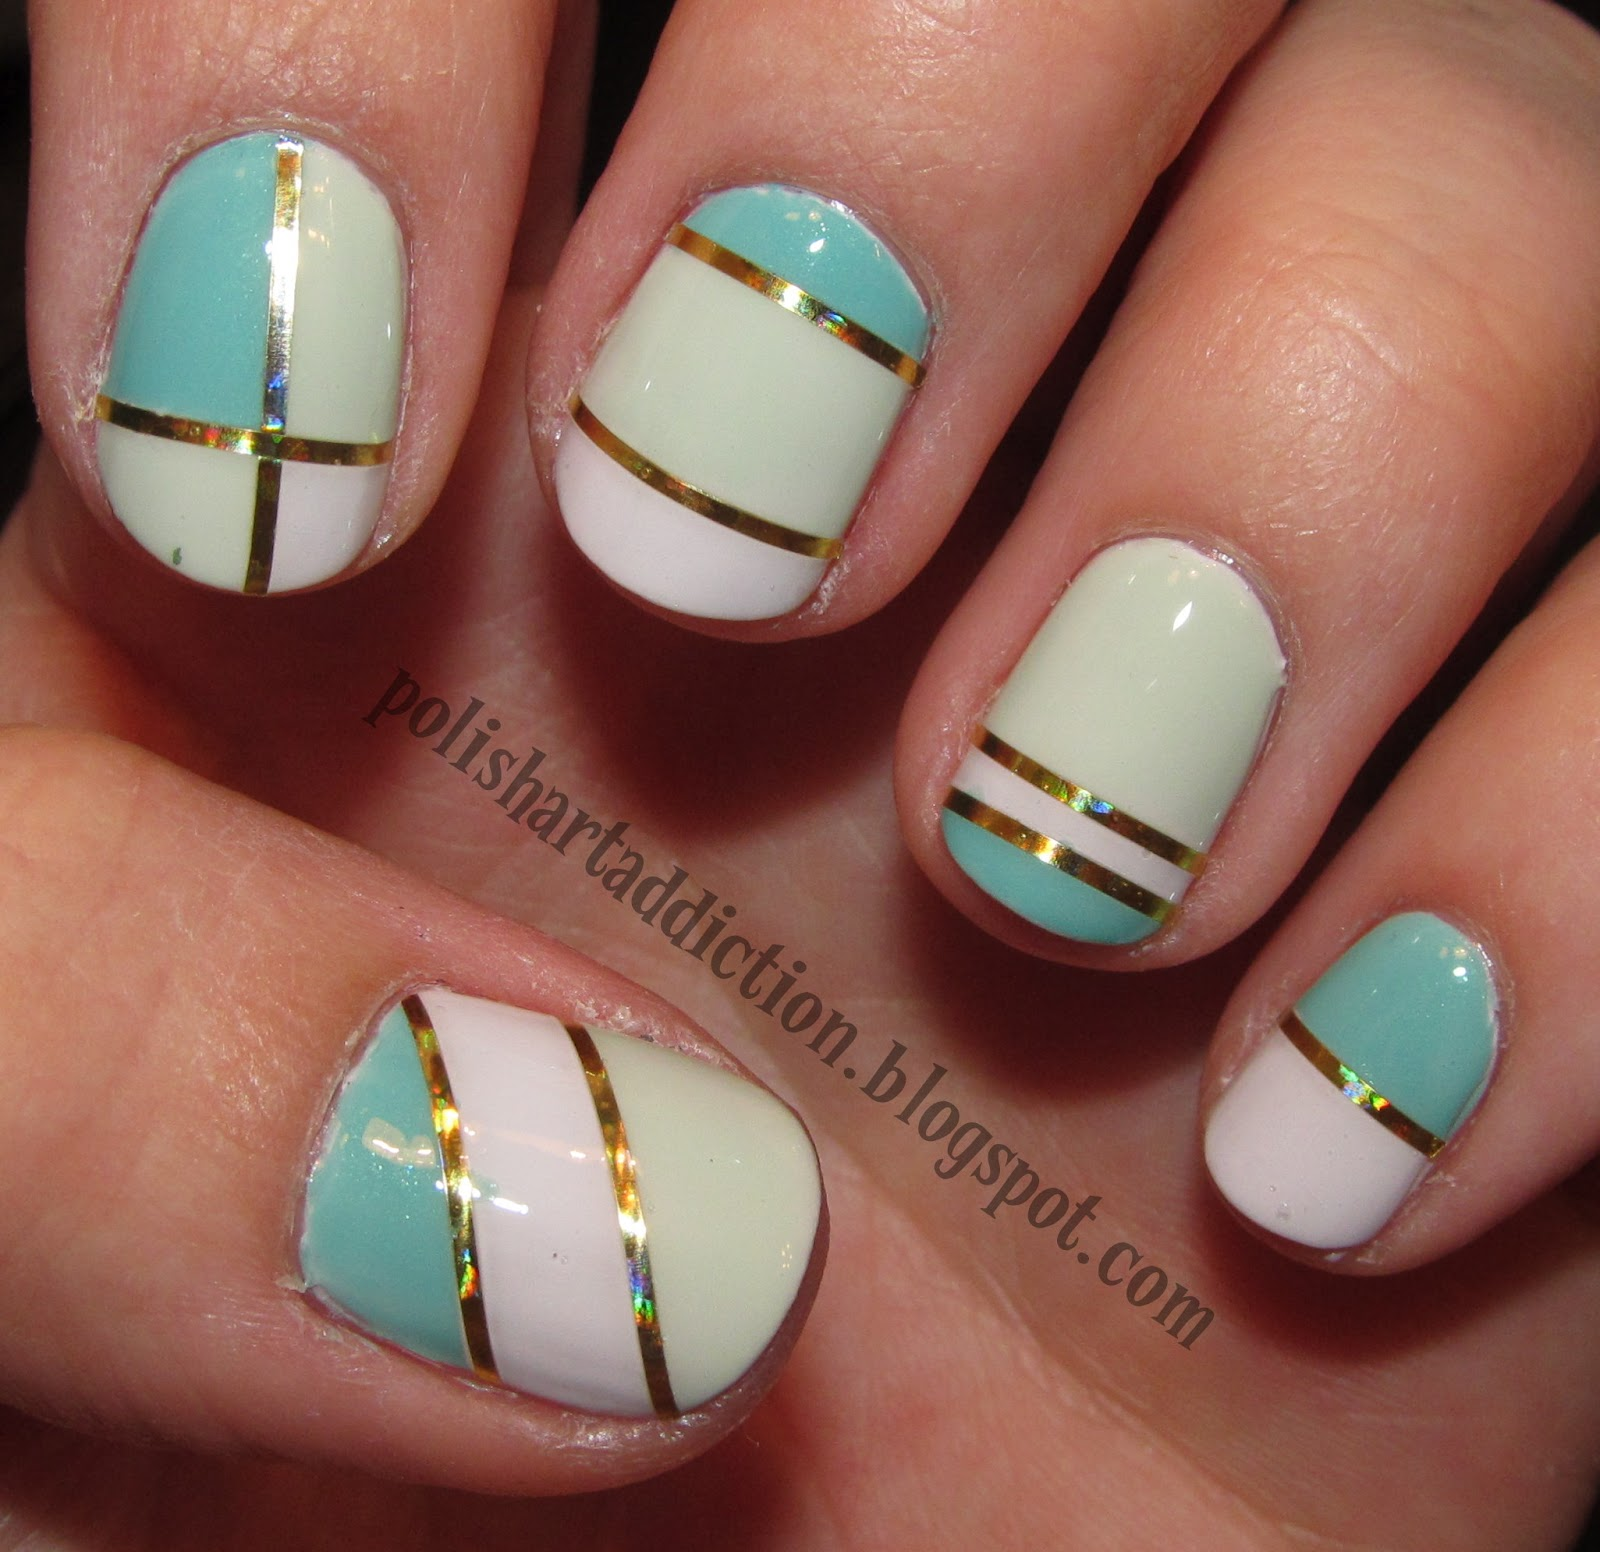 Nail Designs Scotch Tape#*^